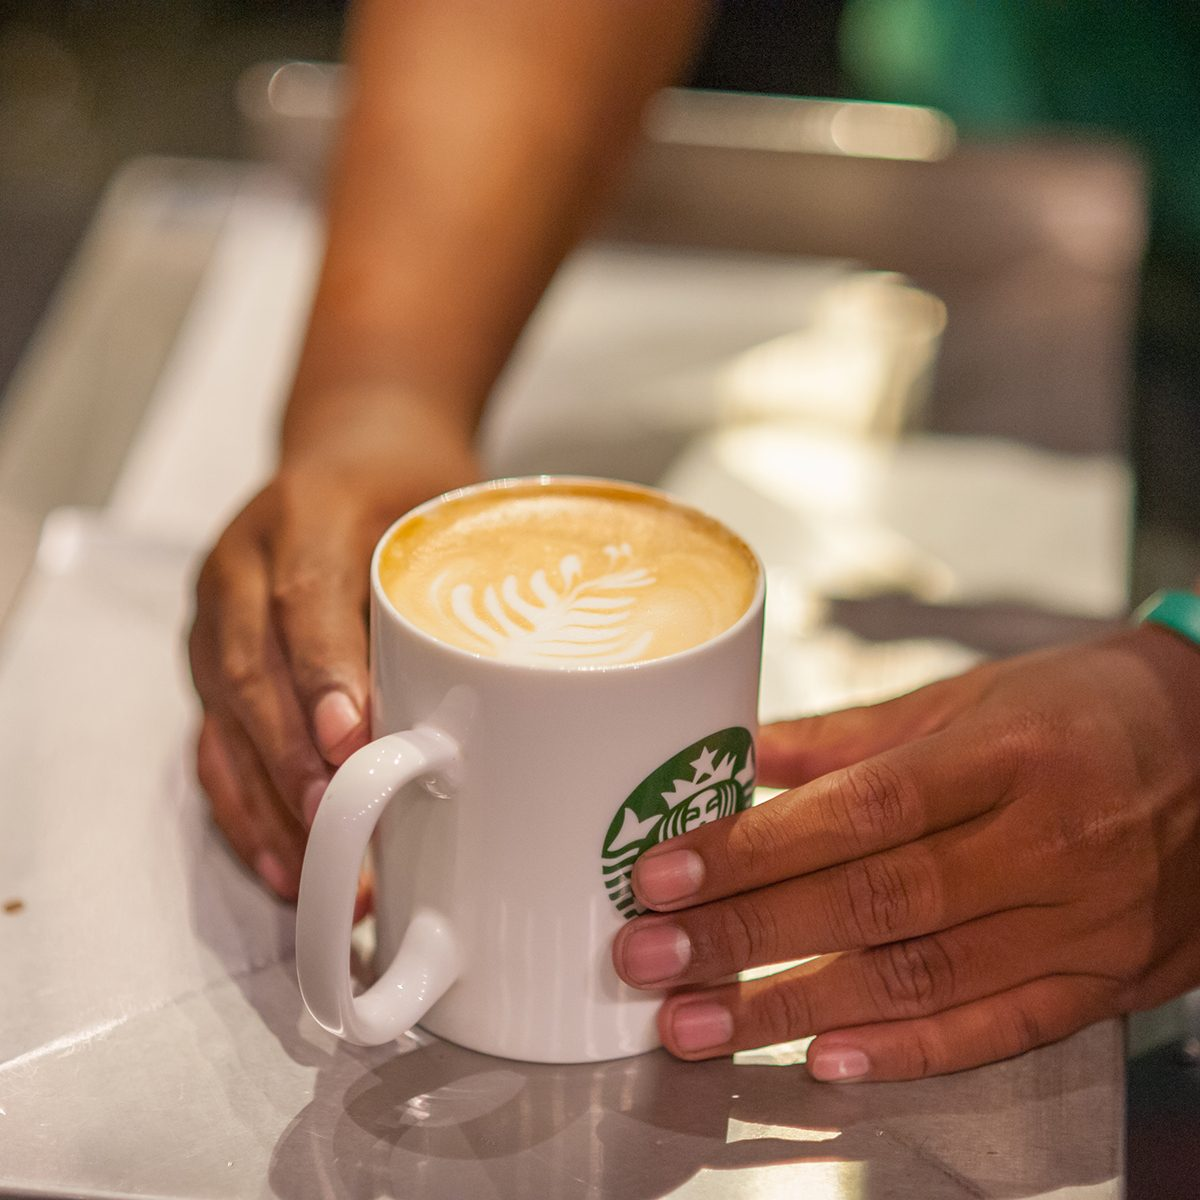 lose up of Starbucks Coffee Barista is hand over a coffee latte to the customers.